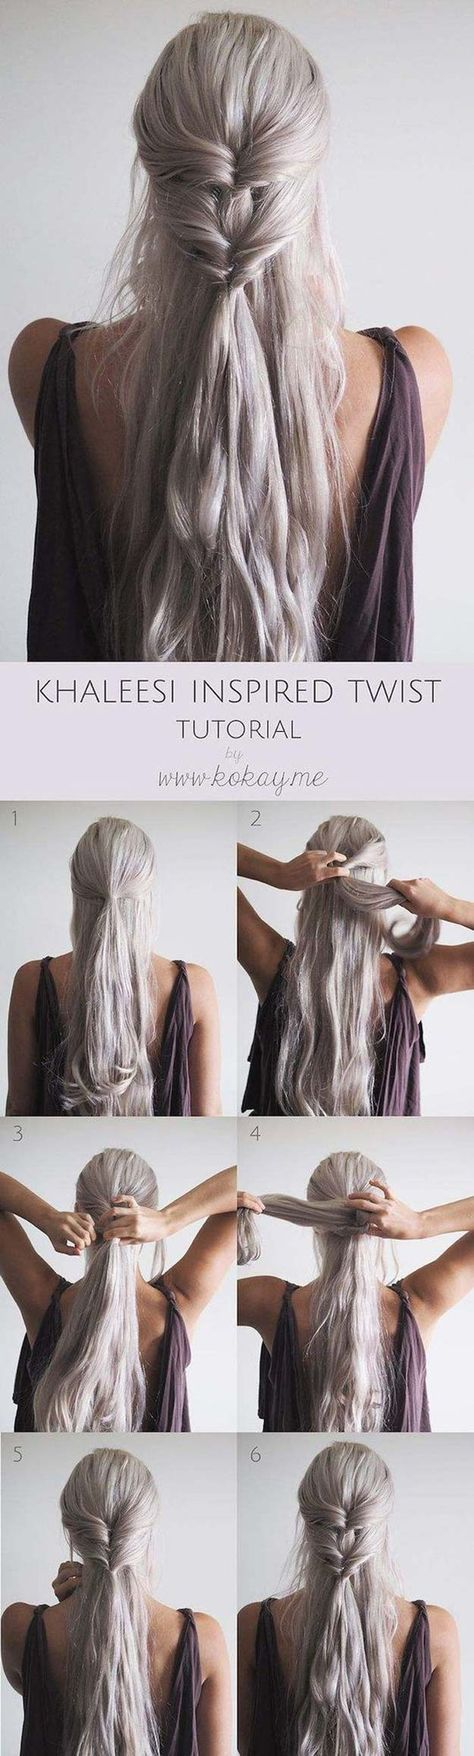 Best hairstyles for long hair khaleesi inspired twist step by